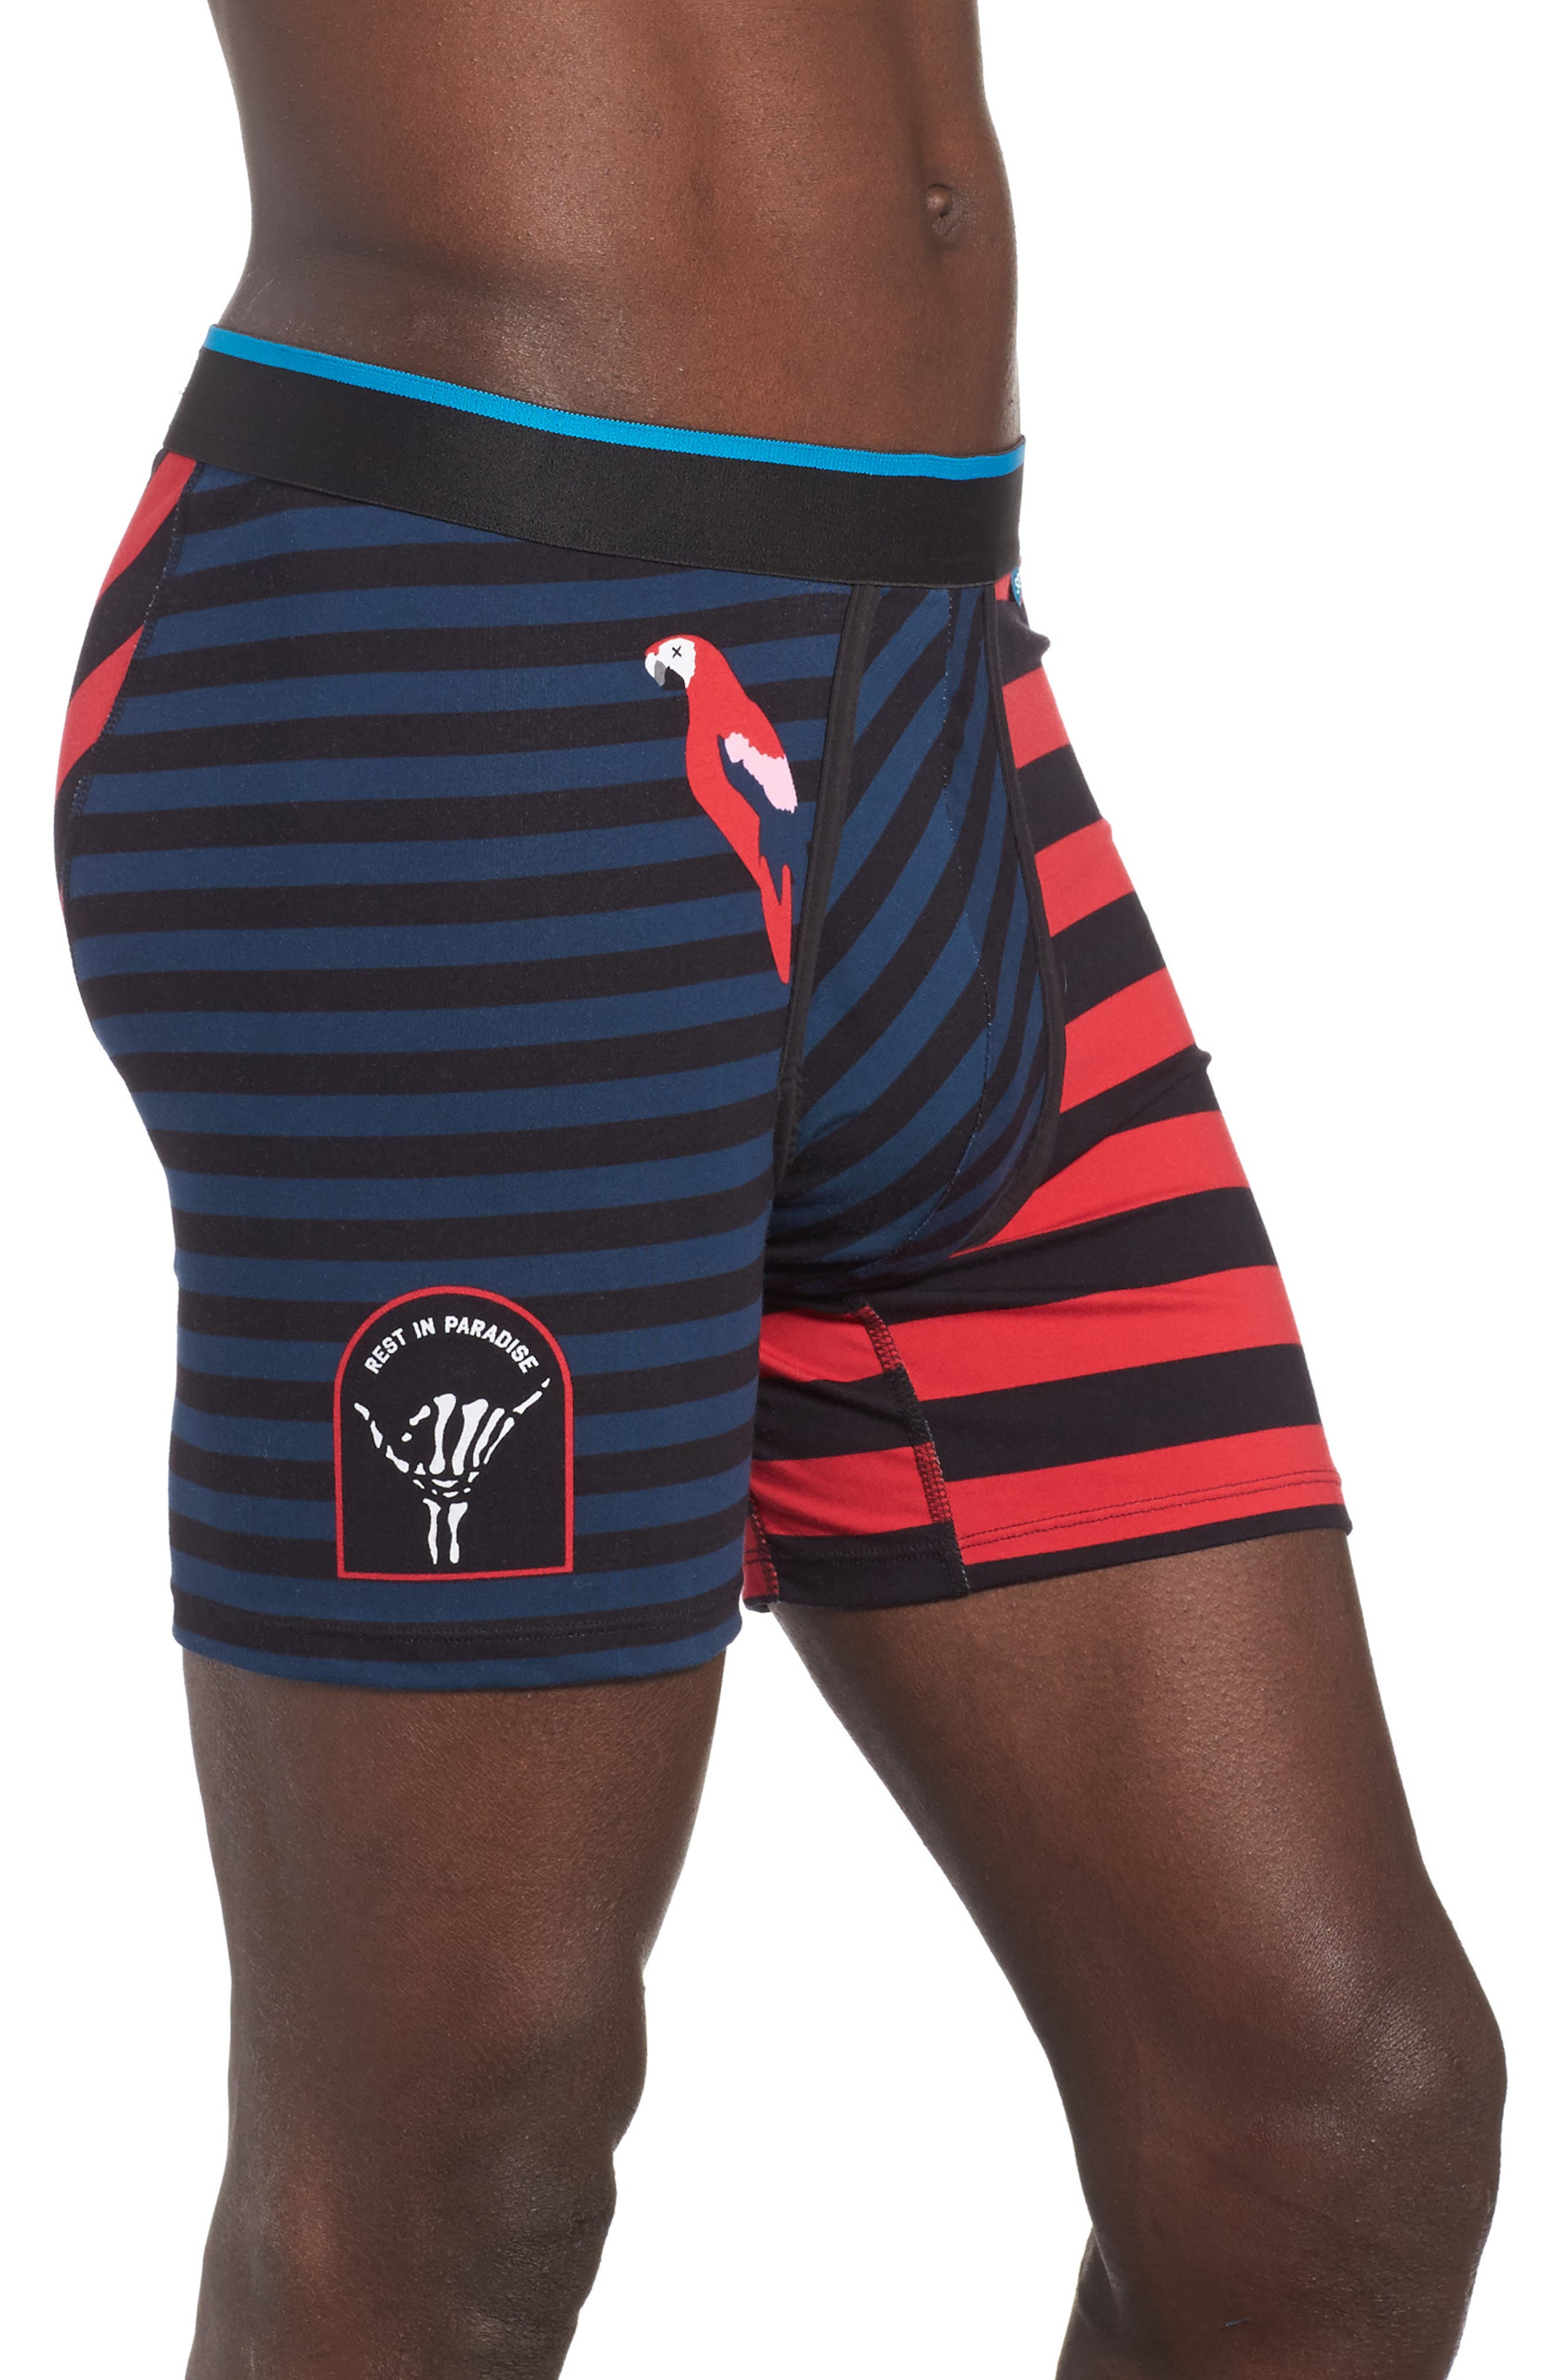 Travel Vibes Boxer Briefs,                             Alternate thumbnail 3, color,                             Medium Blue